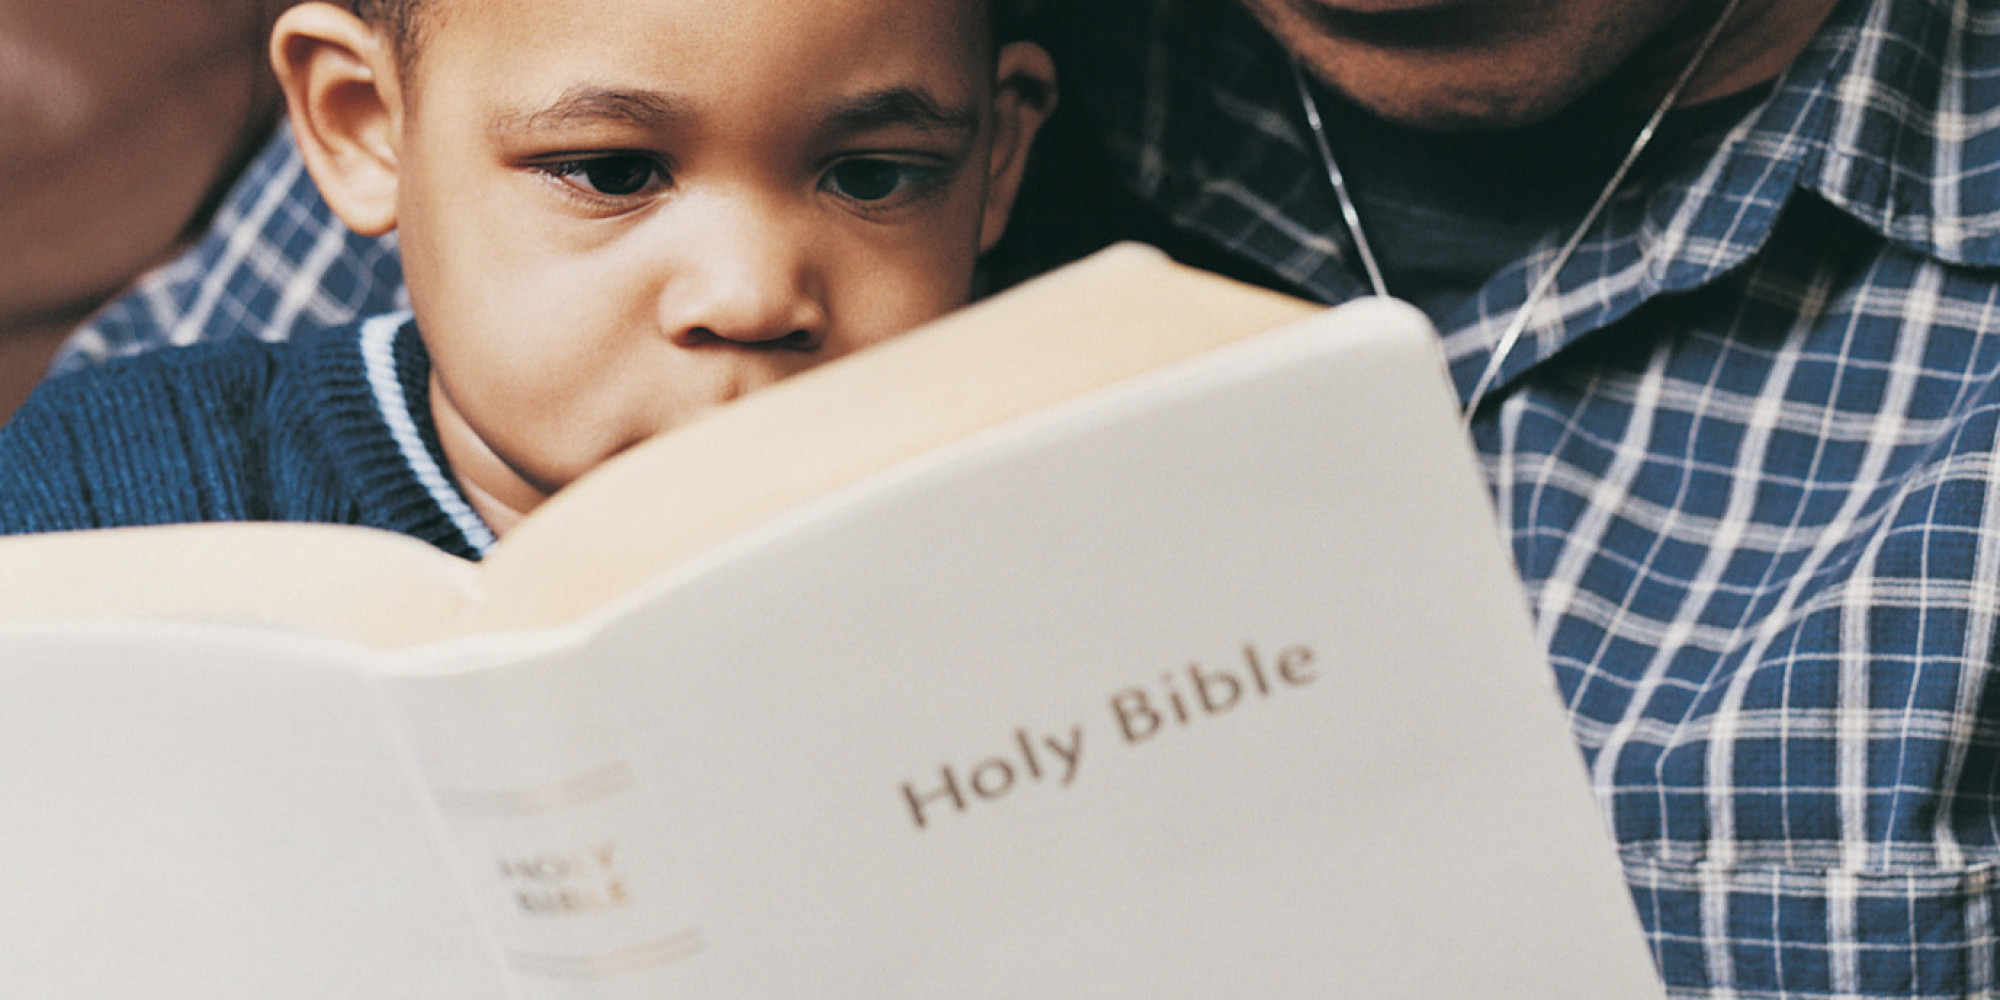 Study: Children Exposed To Religion Have Difficulty Distinguishing Fact From Fiction